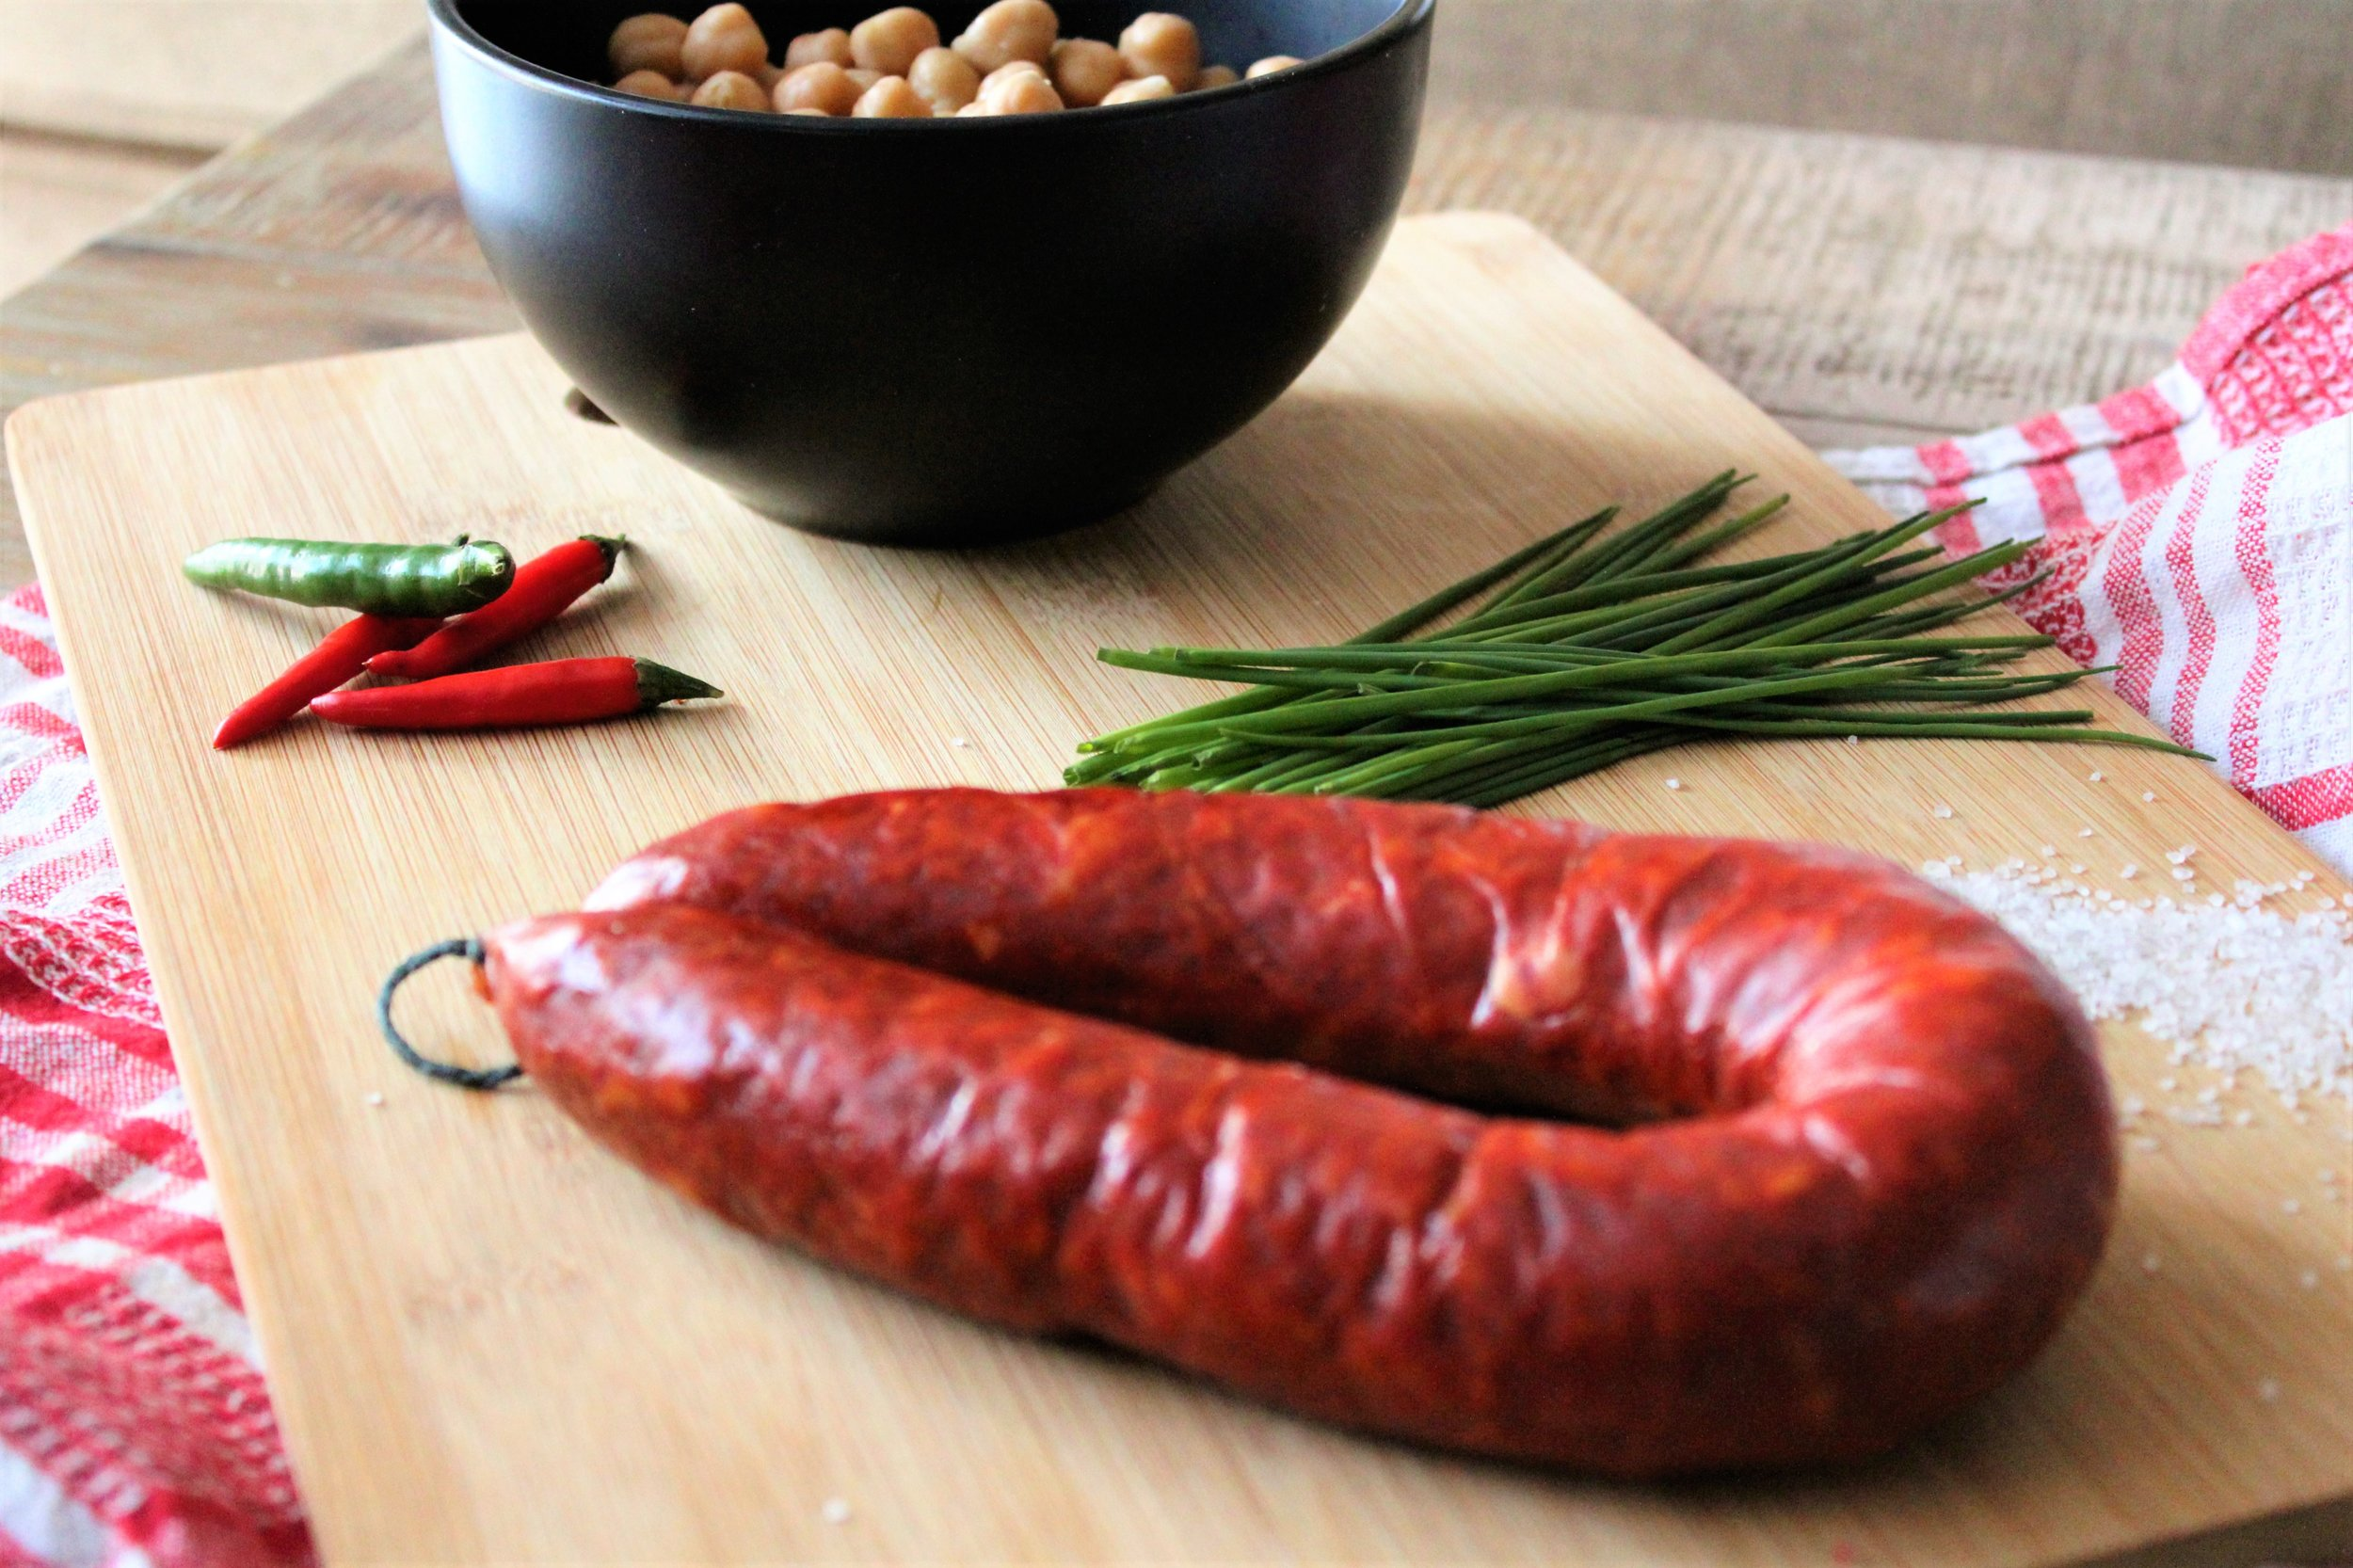 All you need - 2 Tbsp olive oil 1 fresh chili 1 Spanish chorizo (250gm)- sliced diagonally into half cm slices1 tsp minced garlic Half chopped onionTin of Chickpeas - washed & drainedHalf cup chicken stock Handful chopped chives Half tsp salt